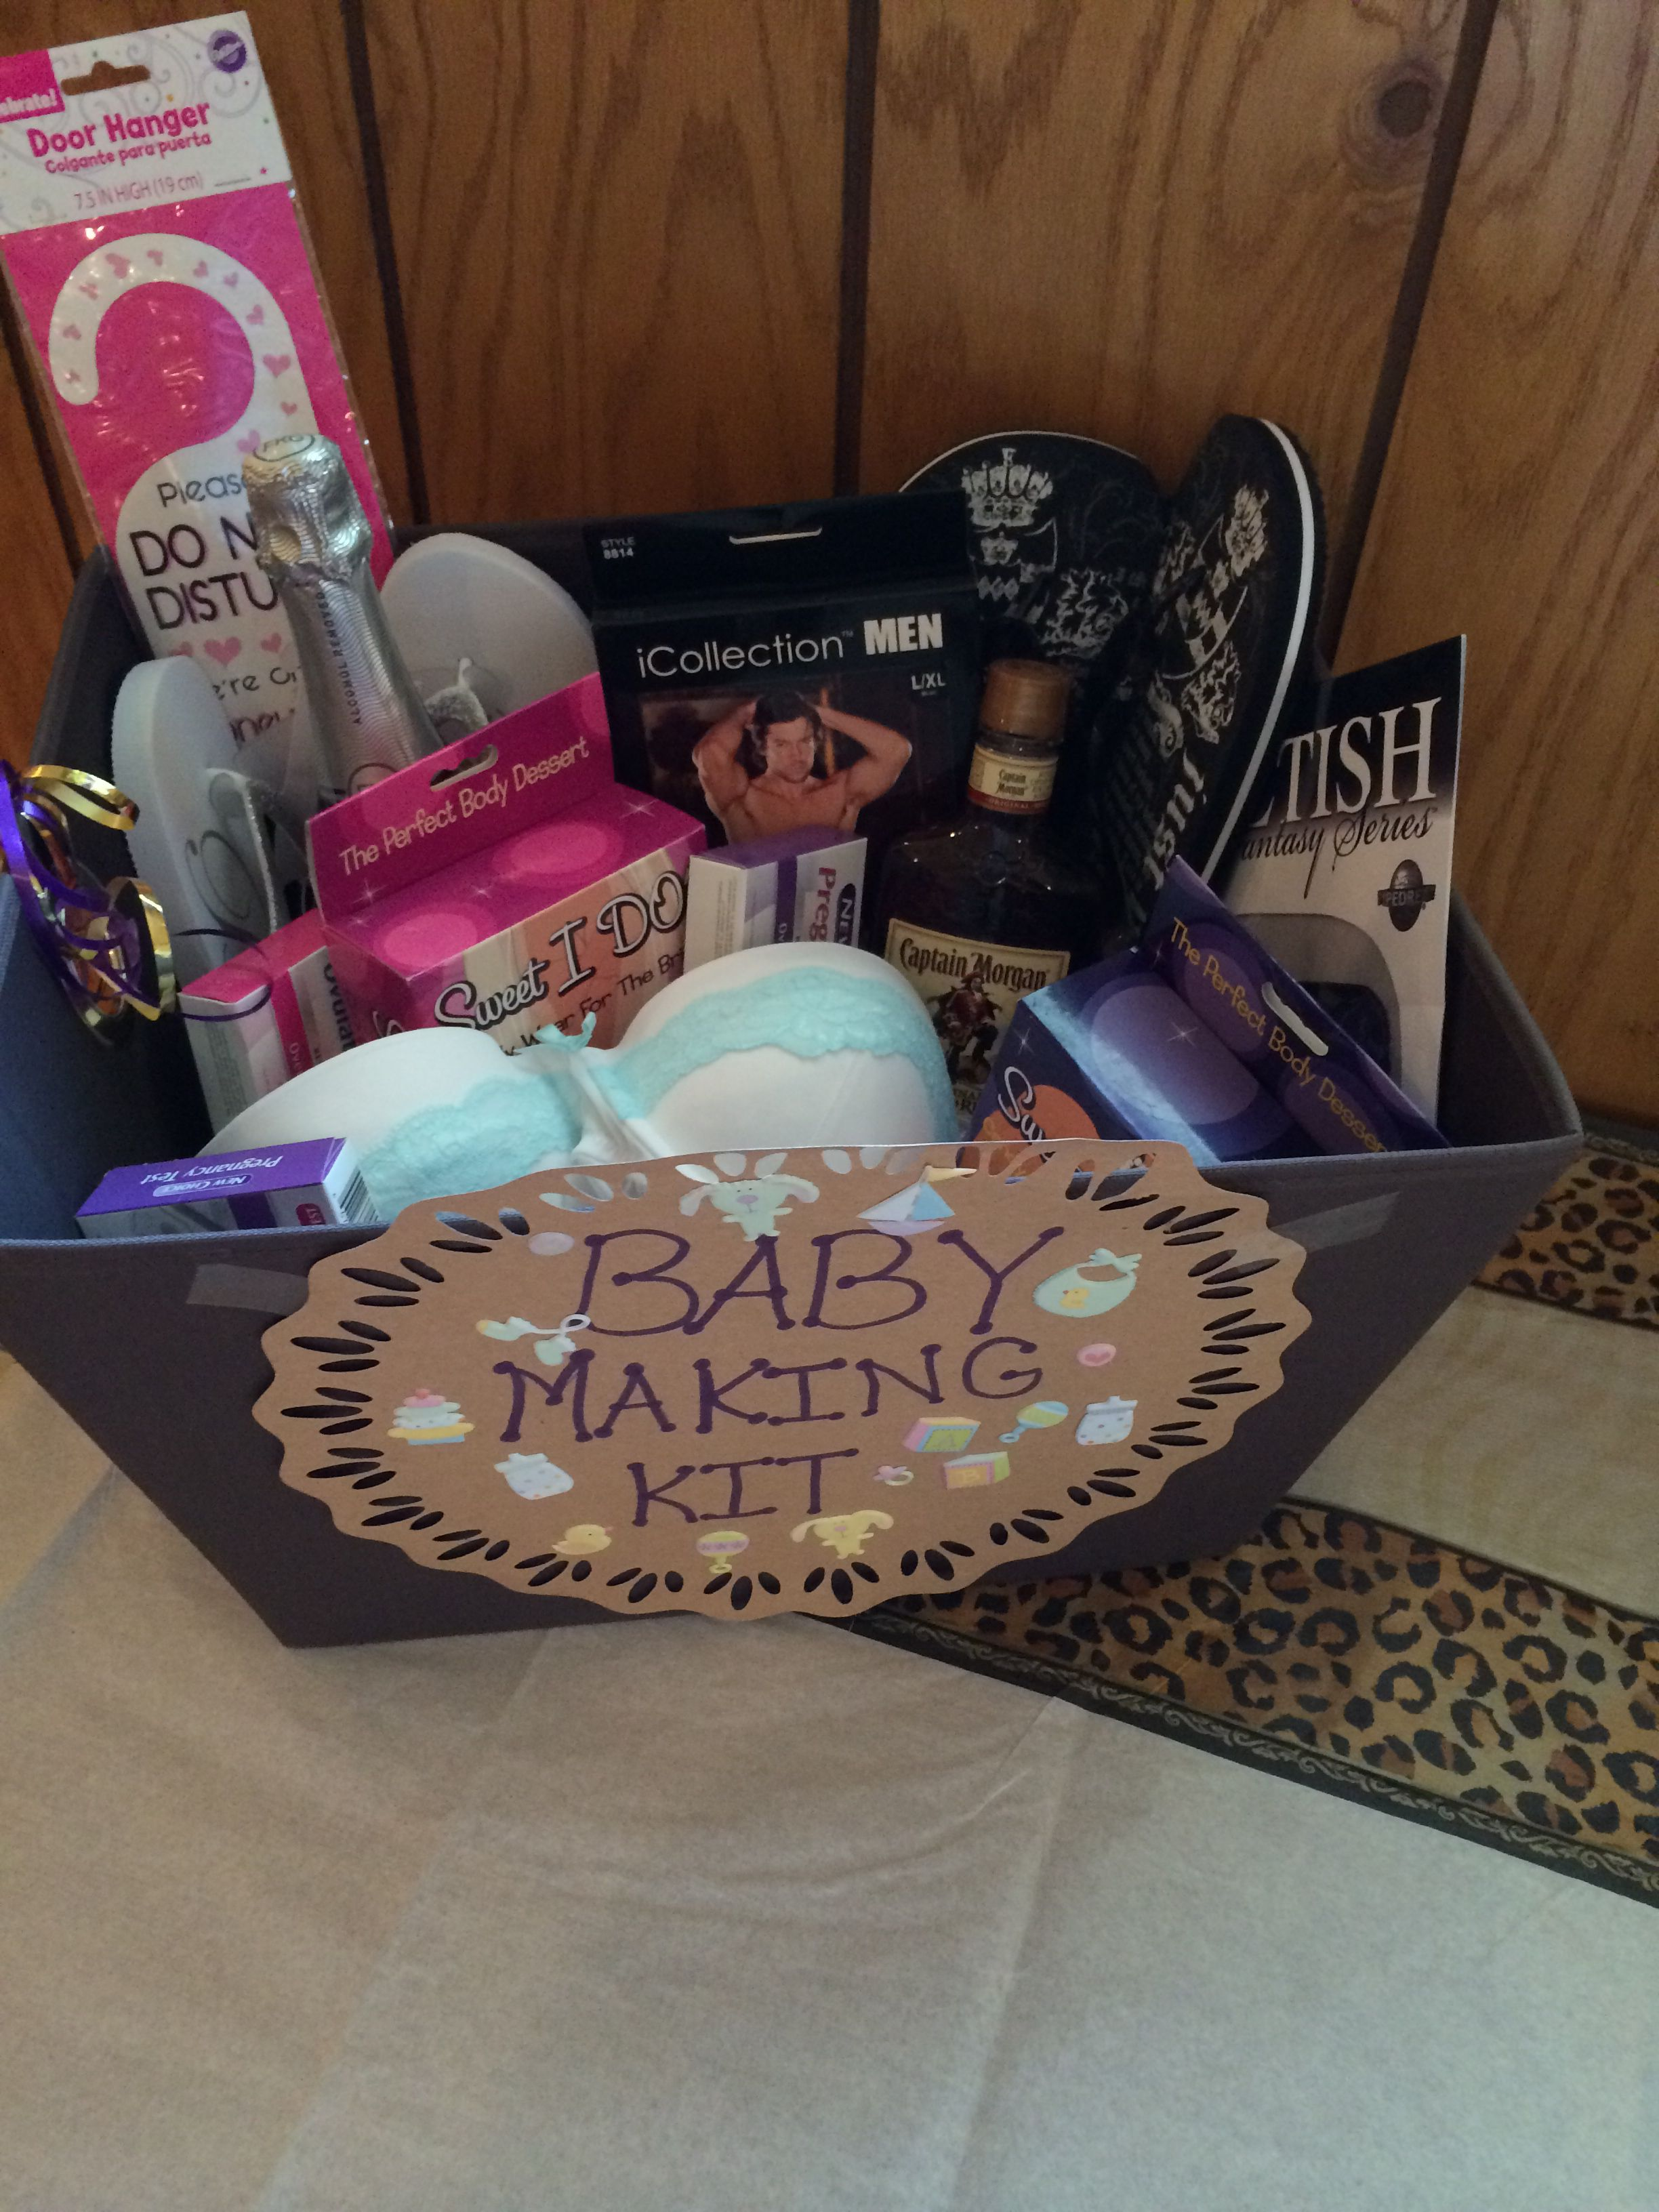 Baby makin kit for bridal shower t To u started I included